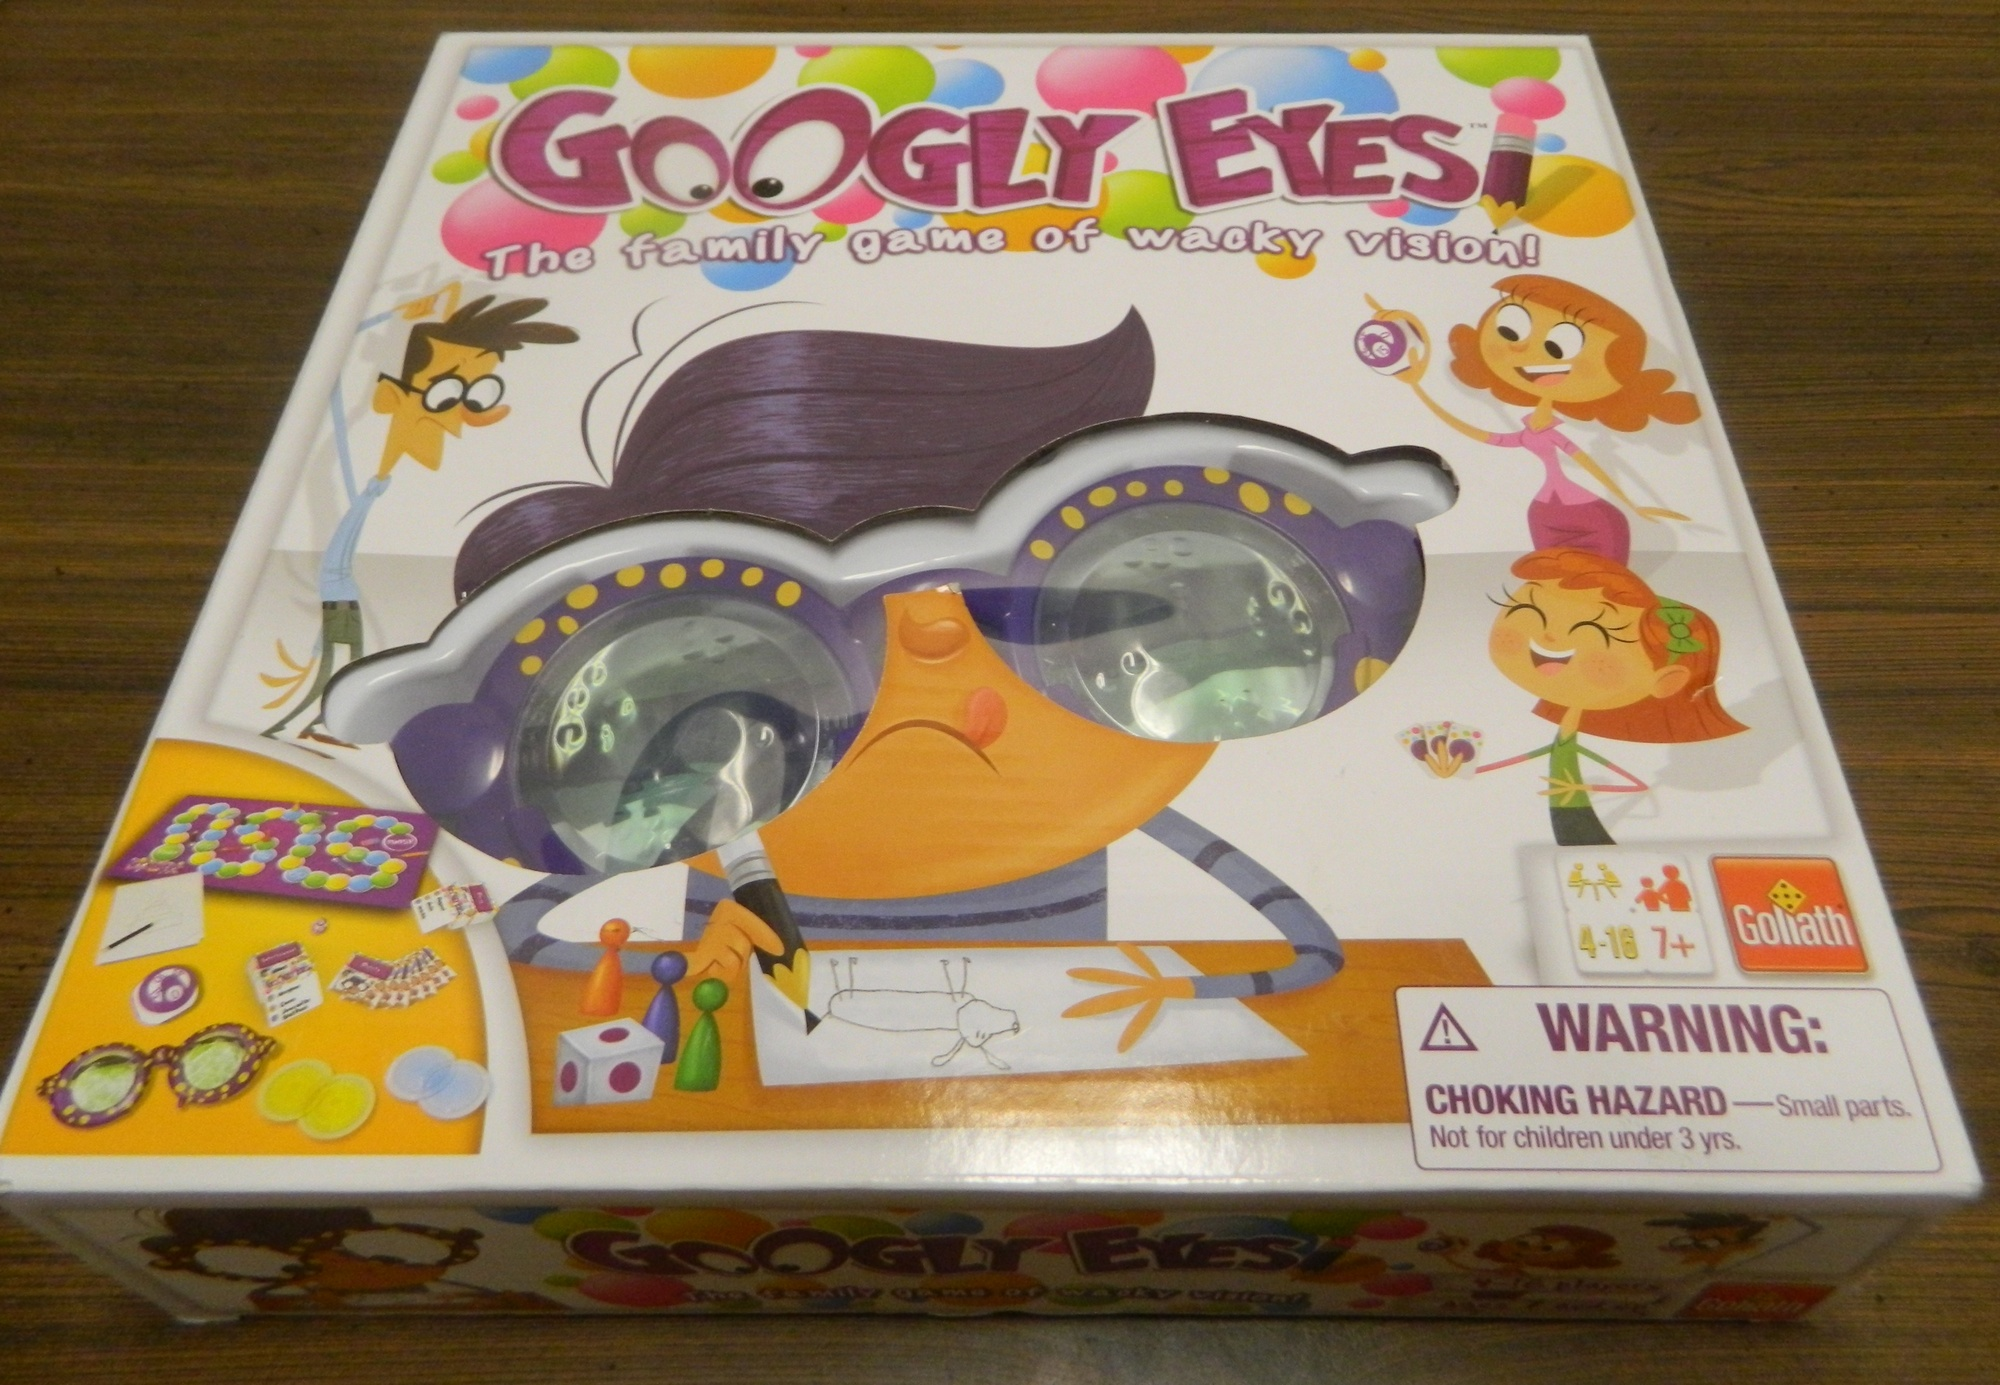 Box for Googly Eyes